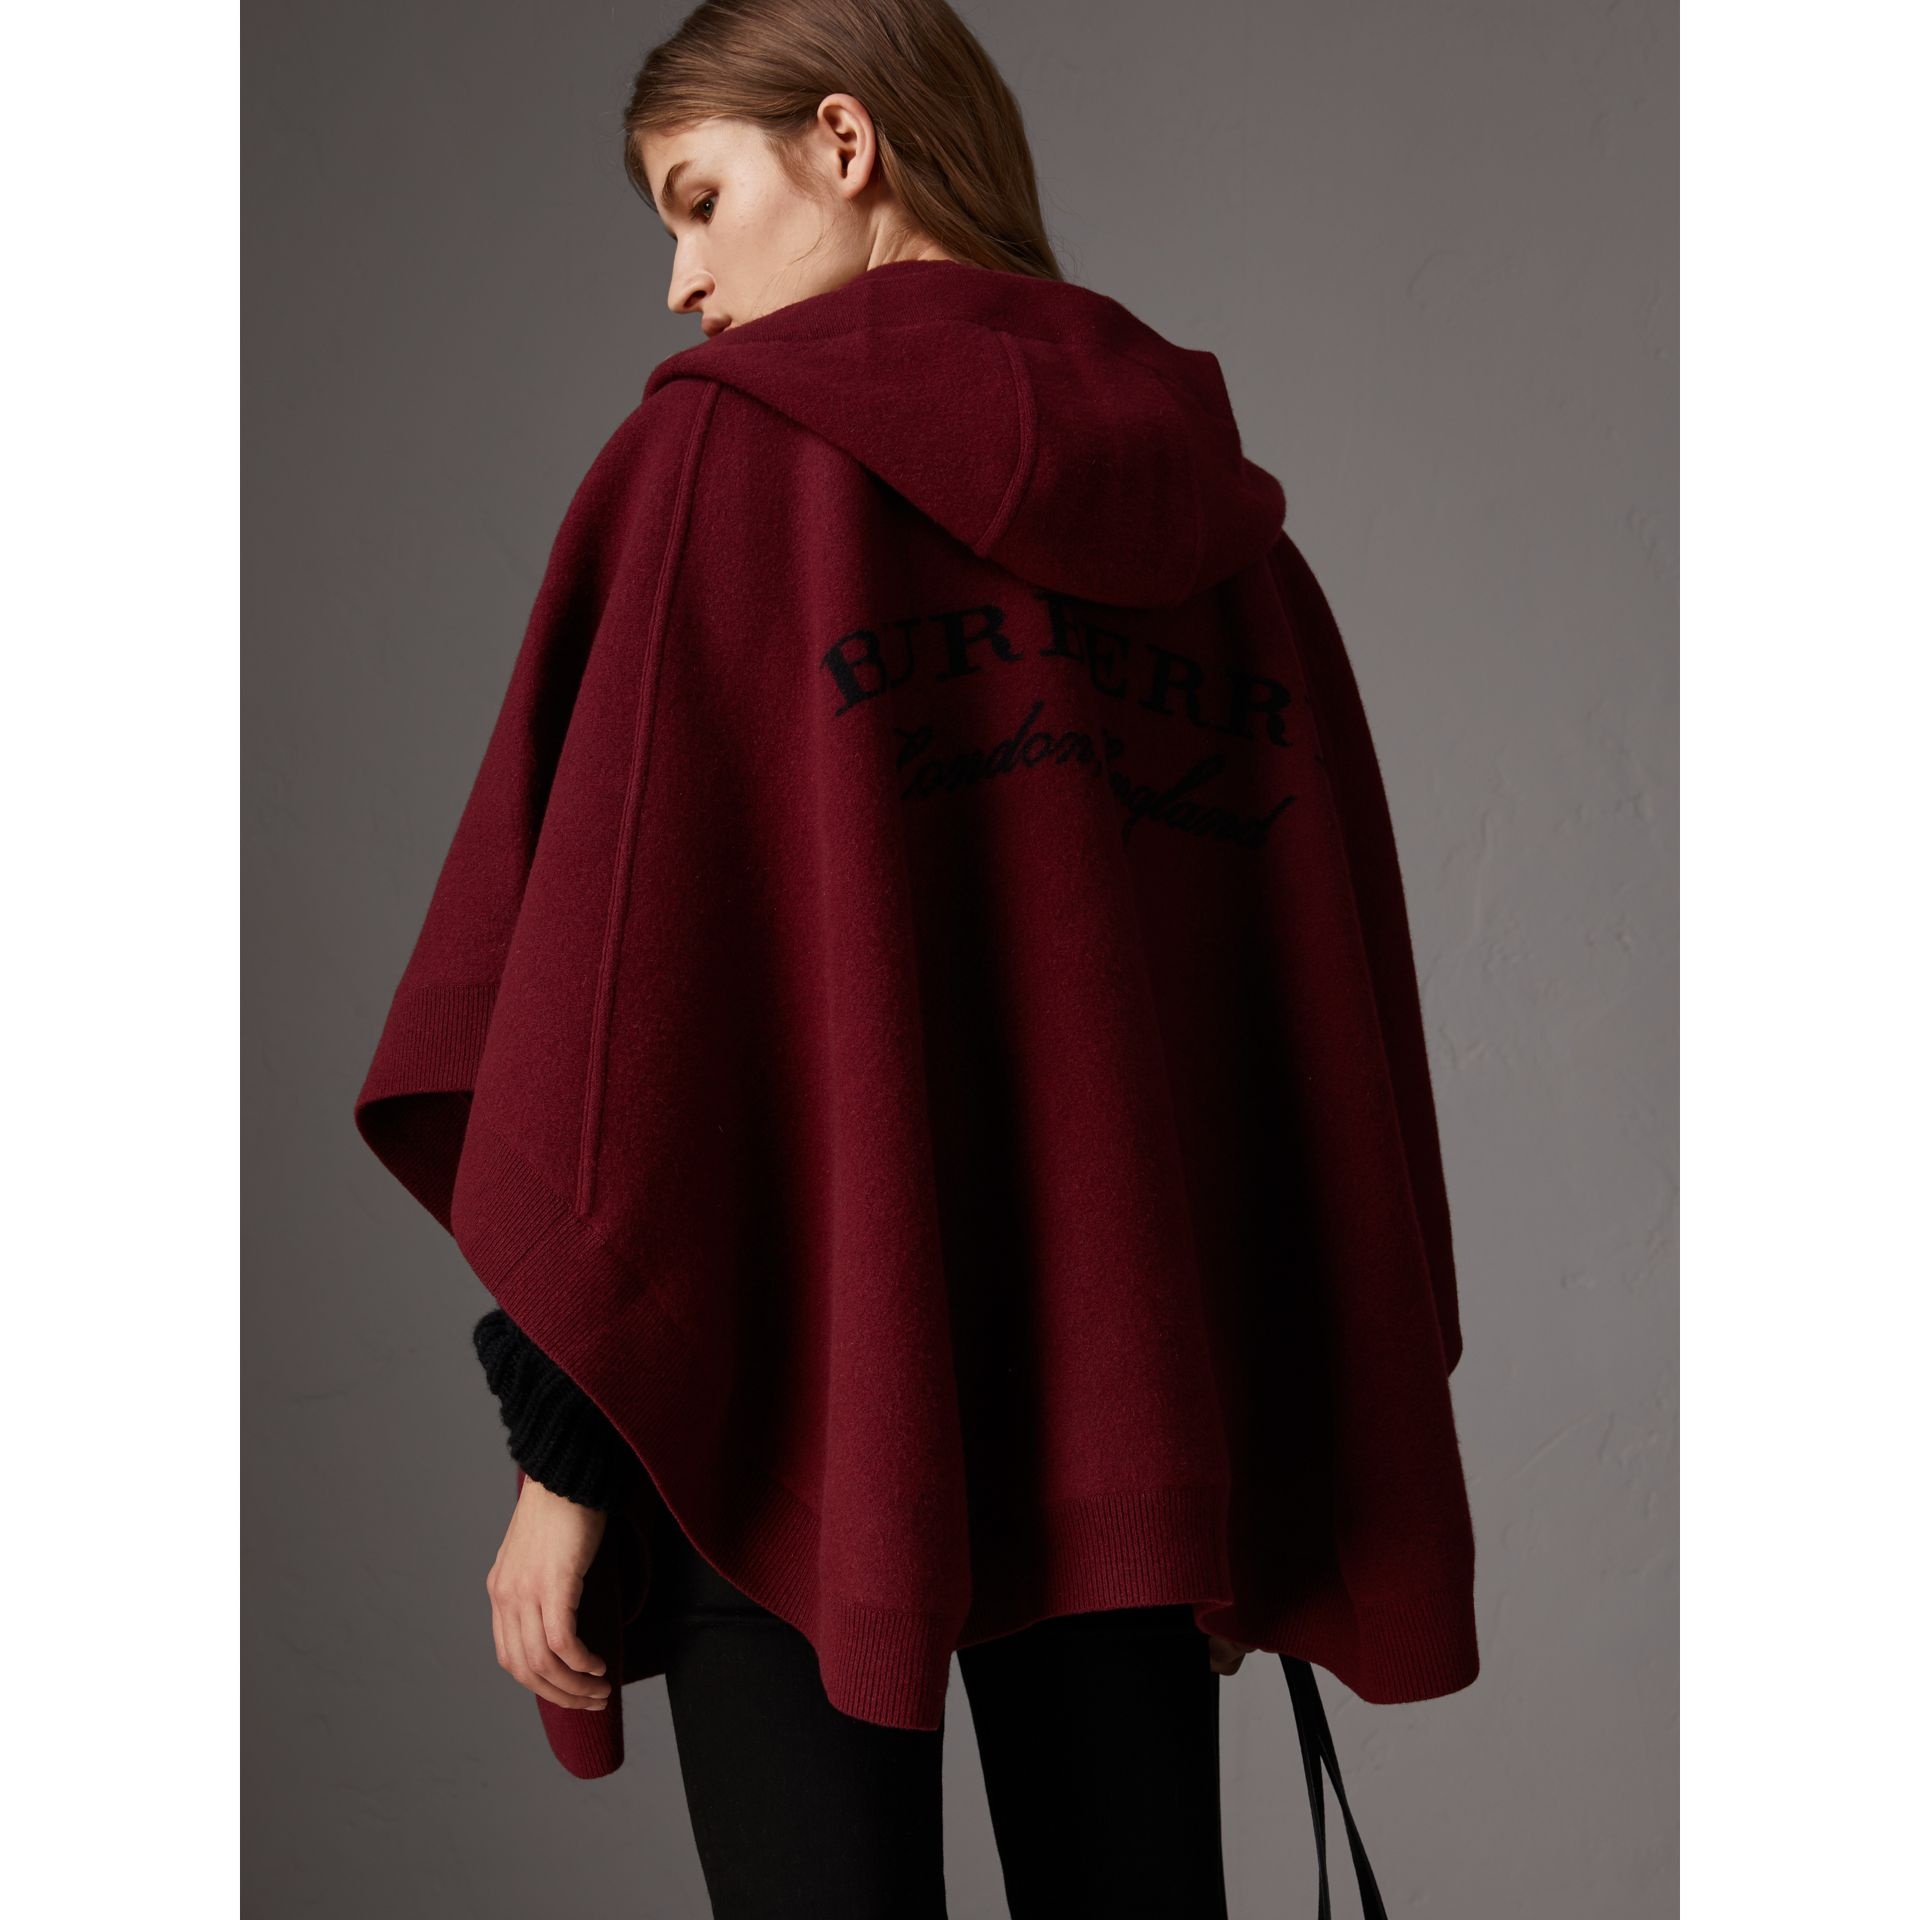 Wool Cashmere Blend Hooded Poncho in Deep Red - Women | Burberry United States - gallery image 2